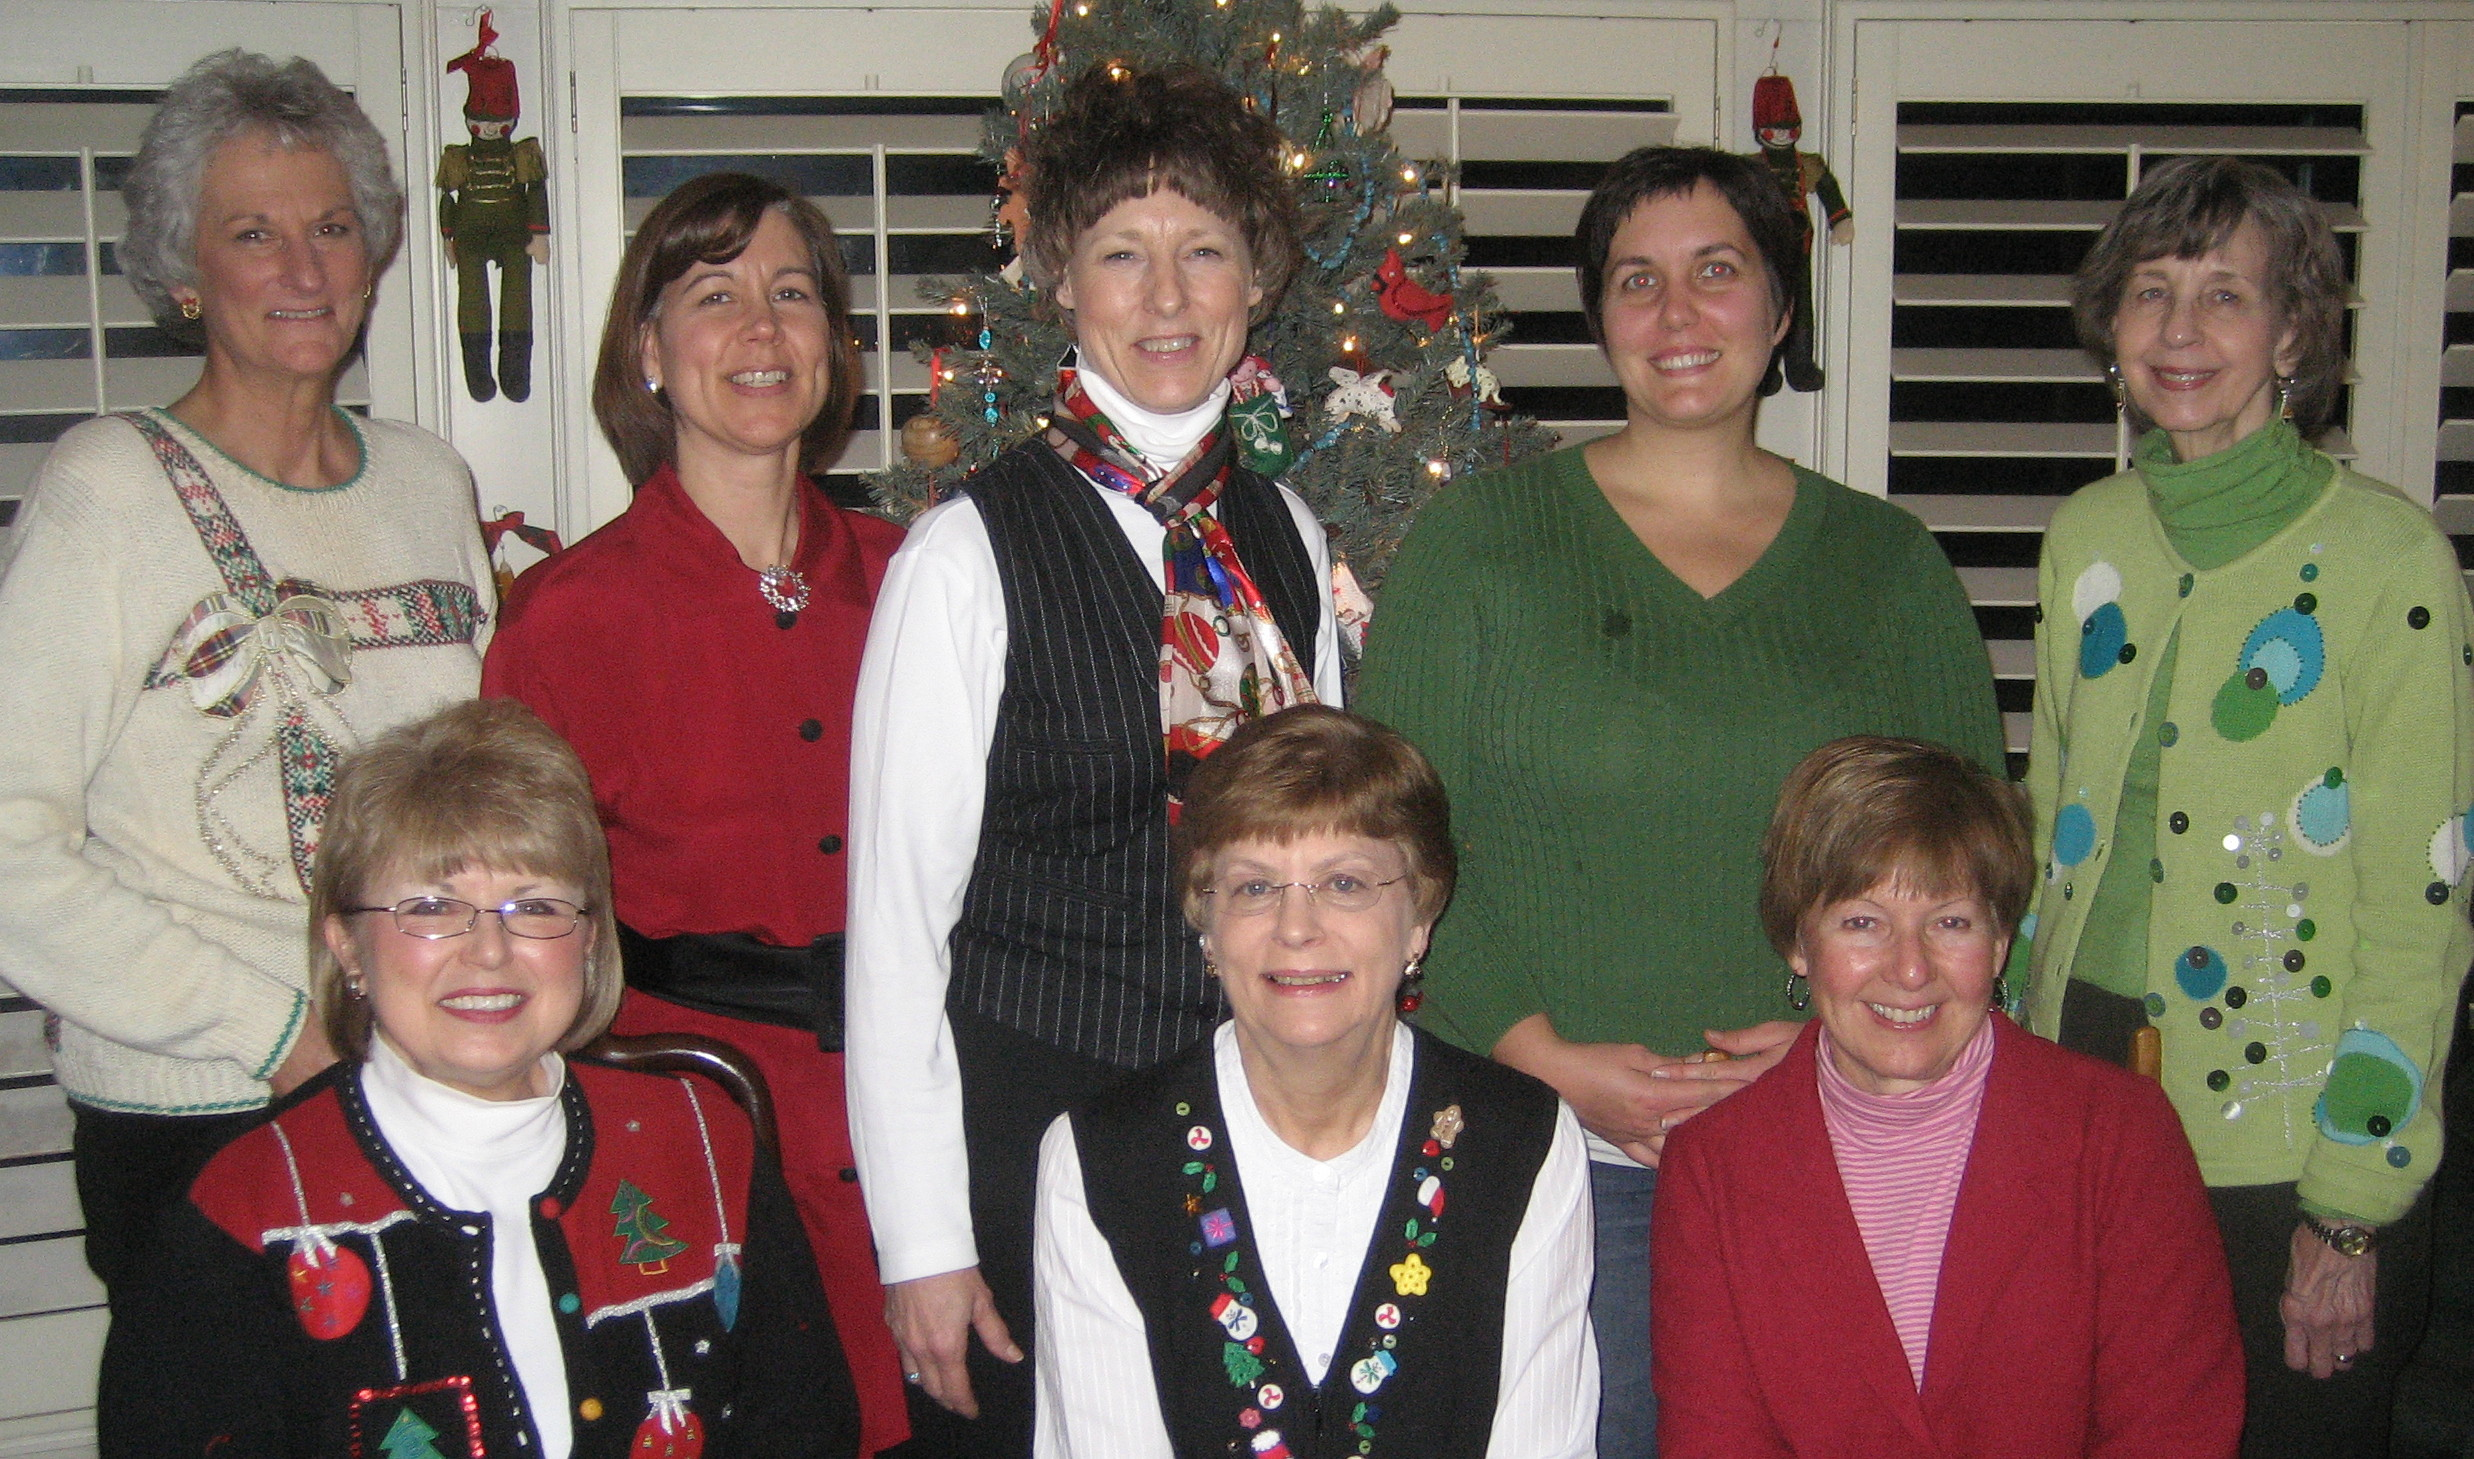 AlphaXiDelta2011 Christmas Photo.jpg